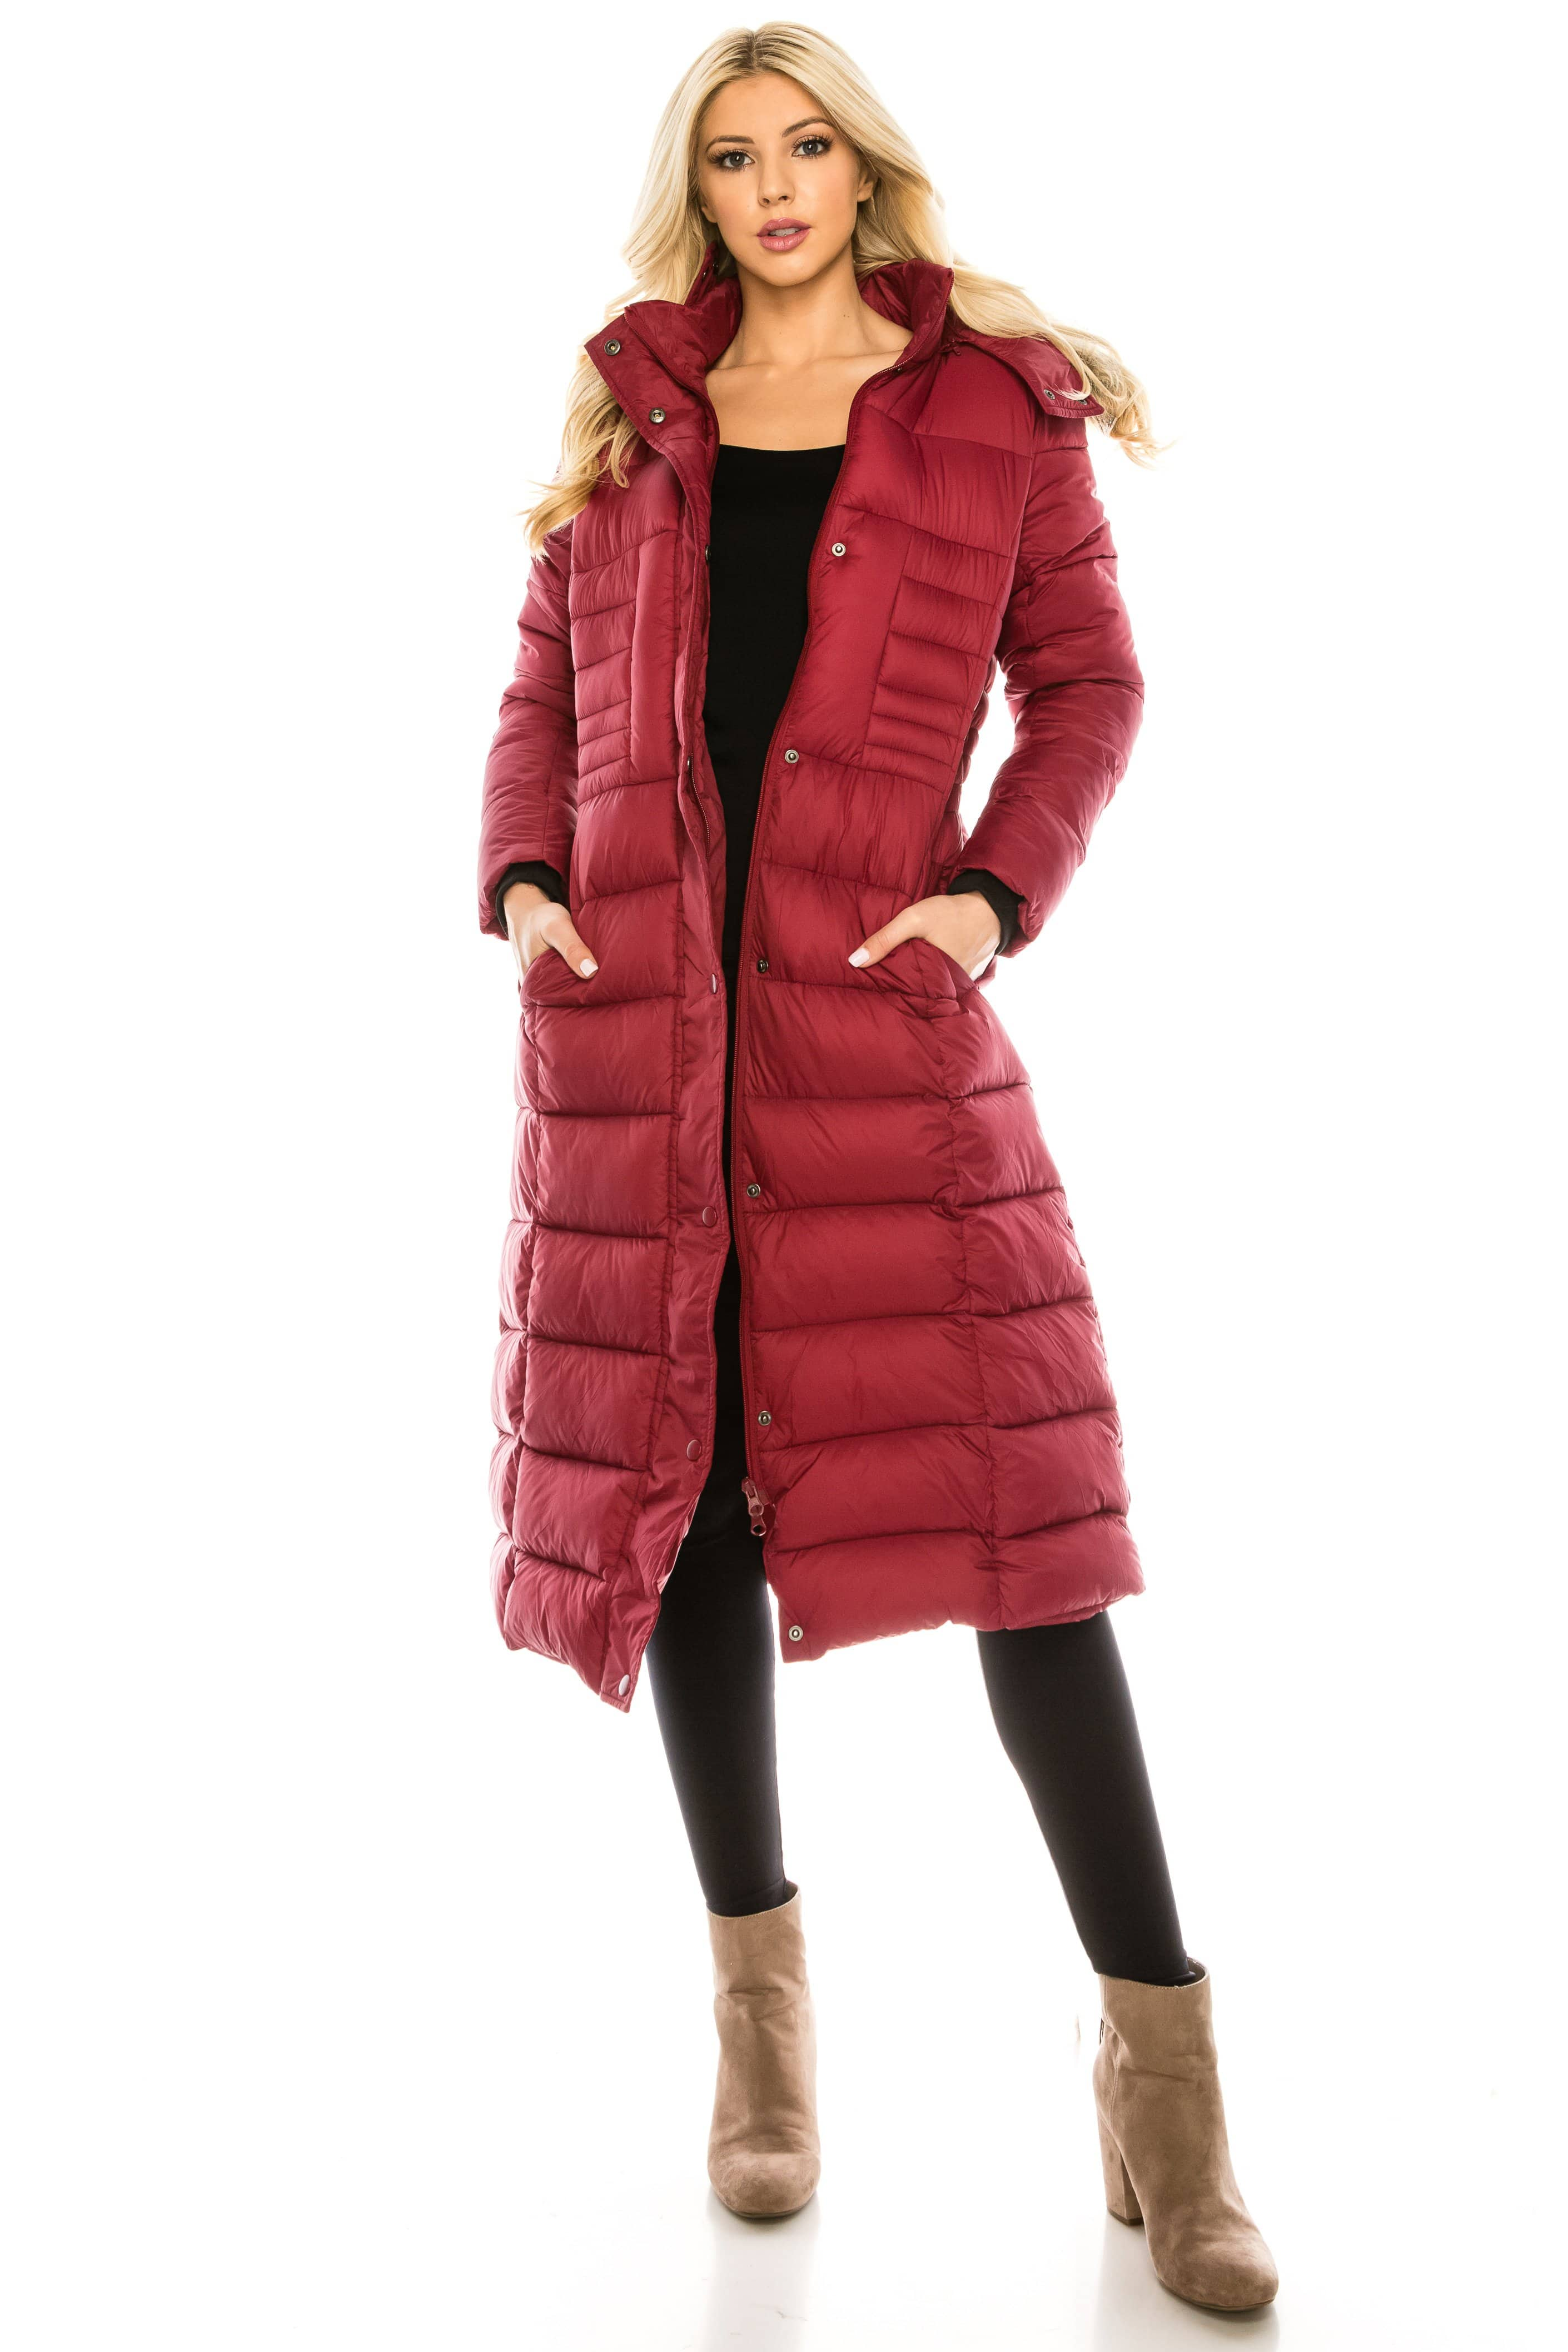 DAILYHAUTE Women's coats WINE / S Haute Edition Women's Maxi Length Quilted Puffer with Fur Lined Hood